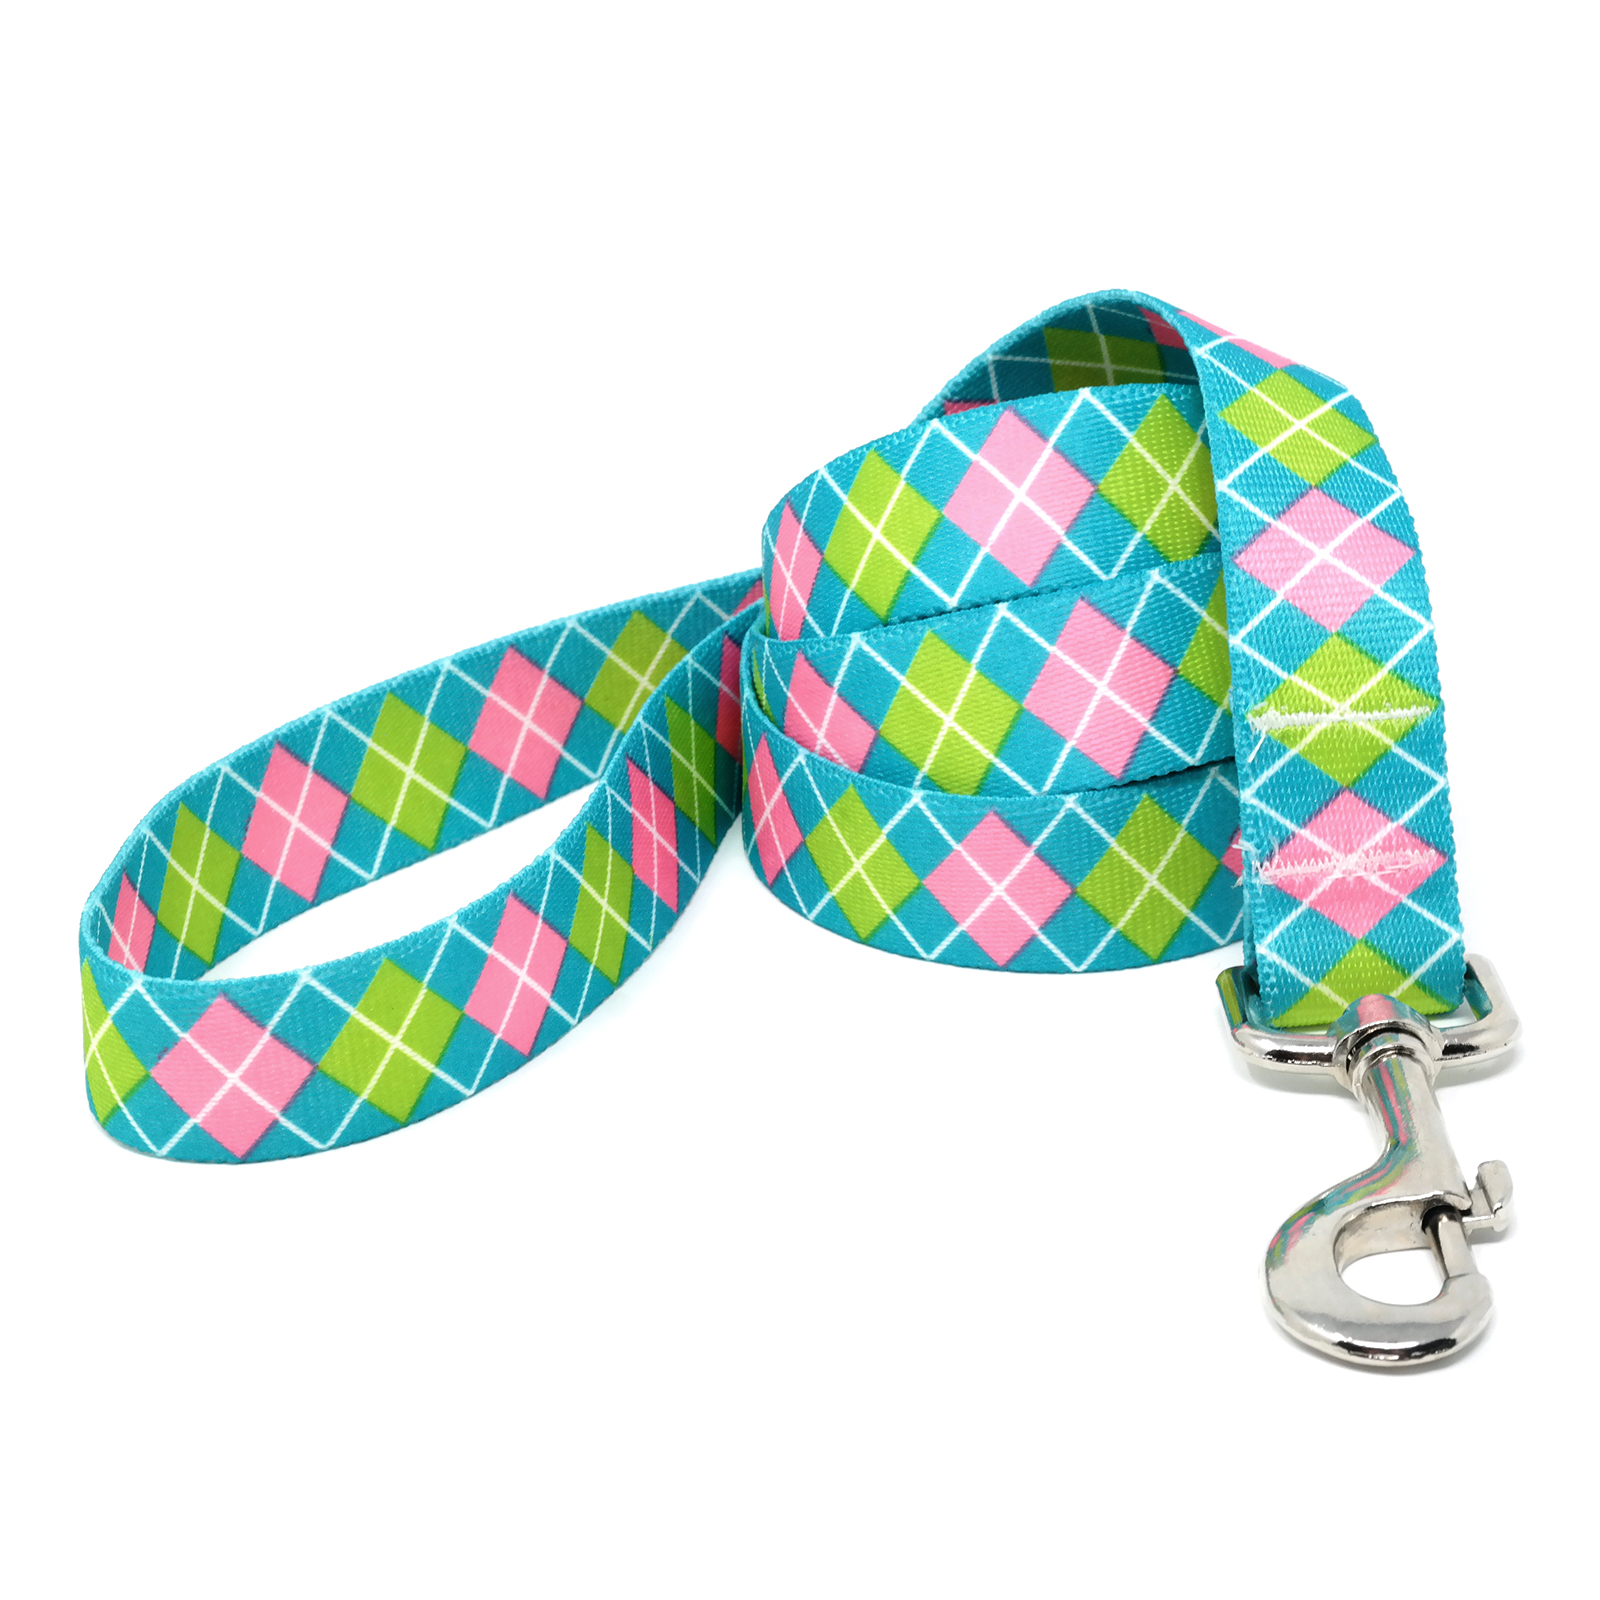 Teal & Pink Argyle Lead